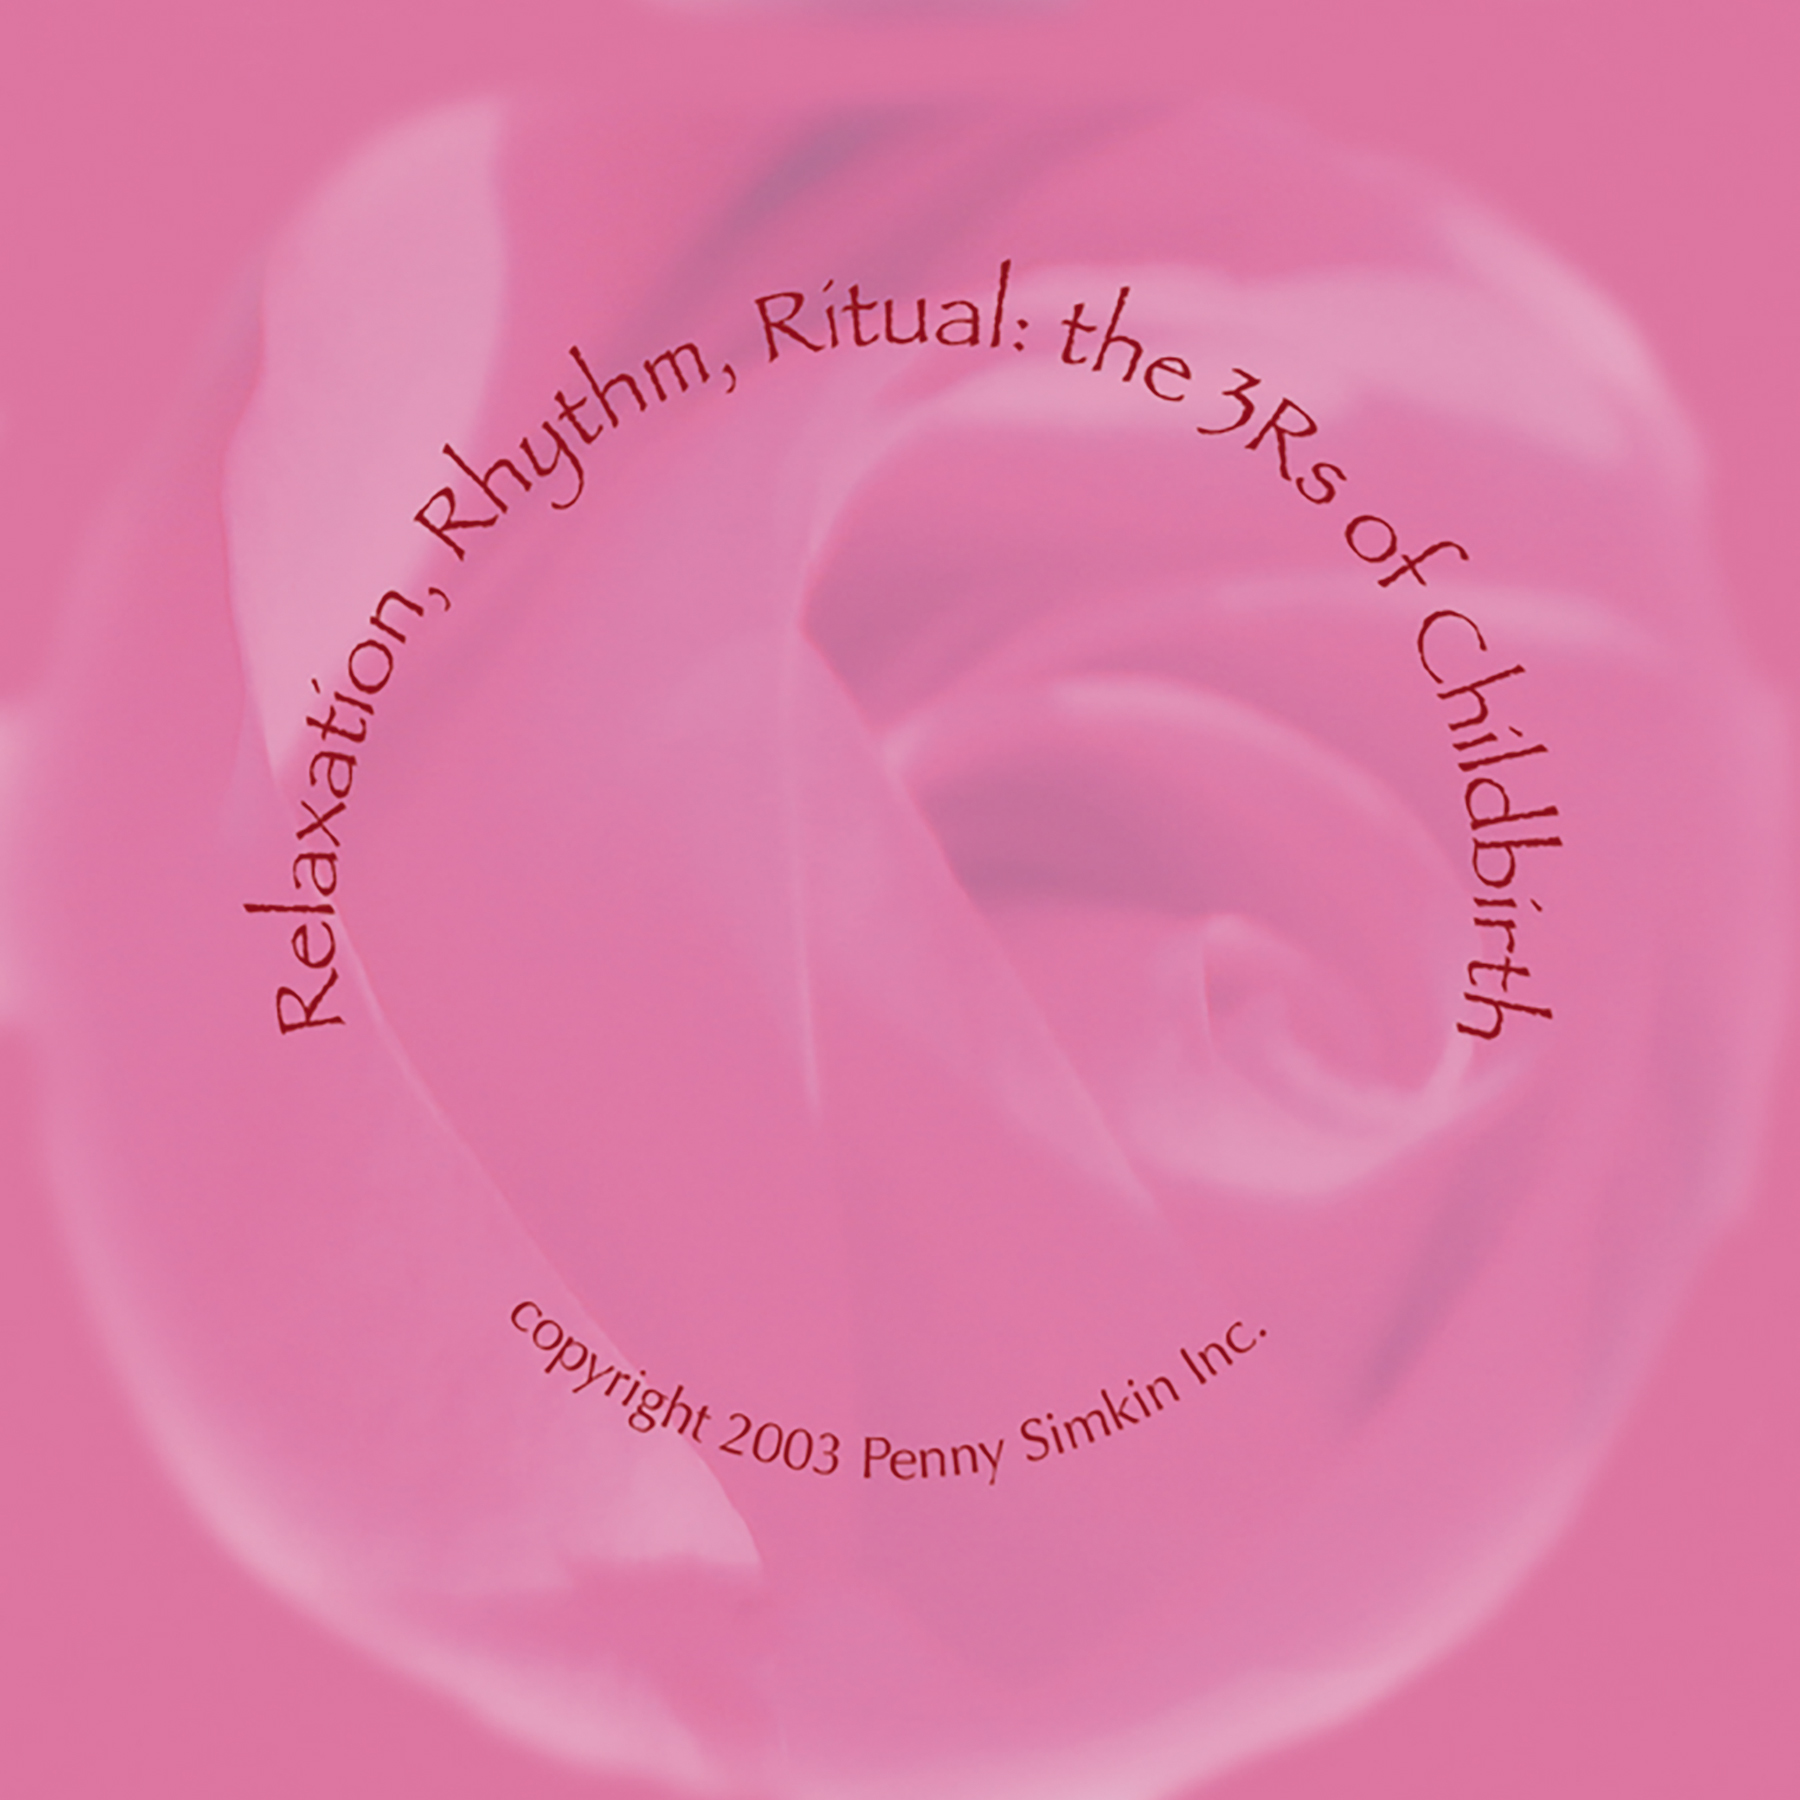 Relaxation Rhythm Ritual 3 Rs of Childbirth Penny Simkin DVD cover, closeup of pink rose, Childbirth Graphics, 48136